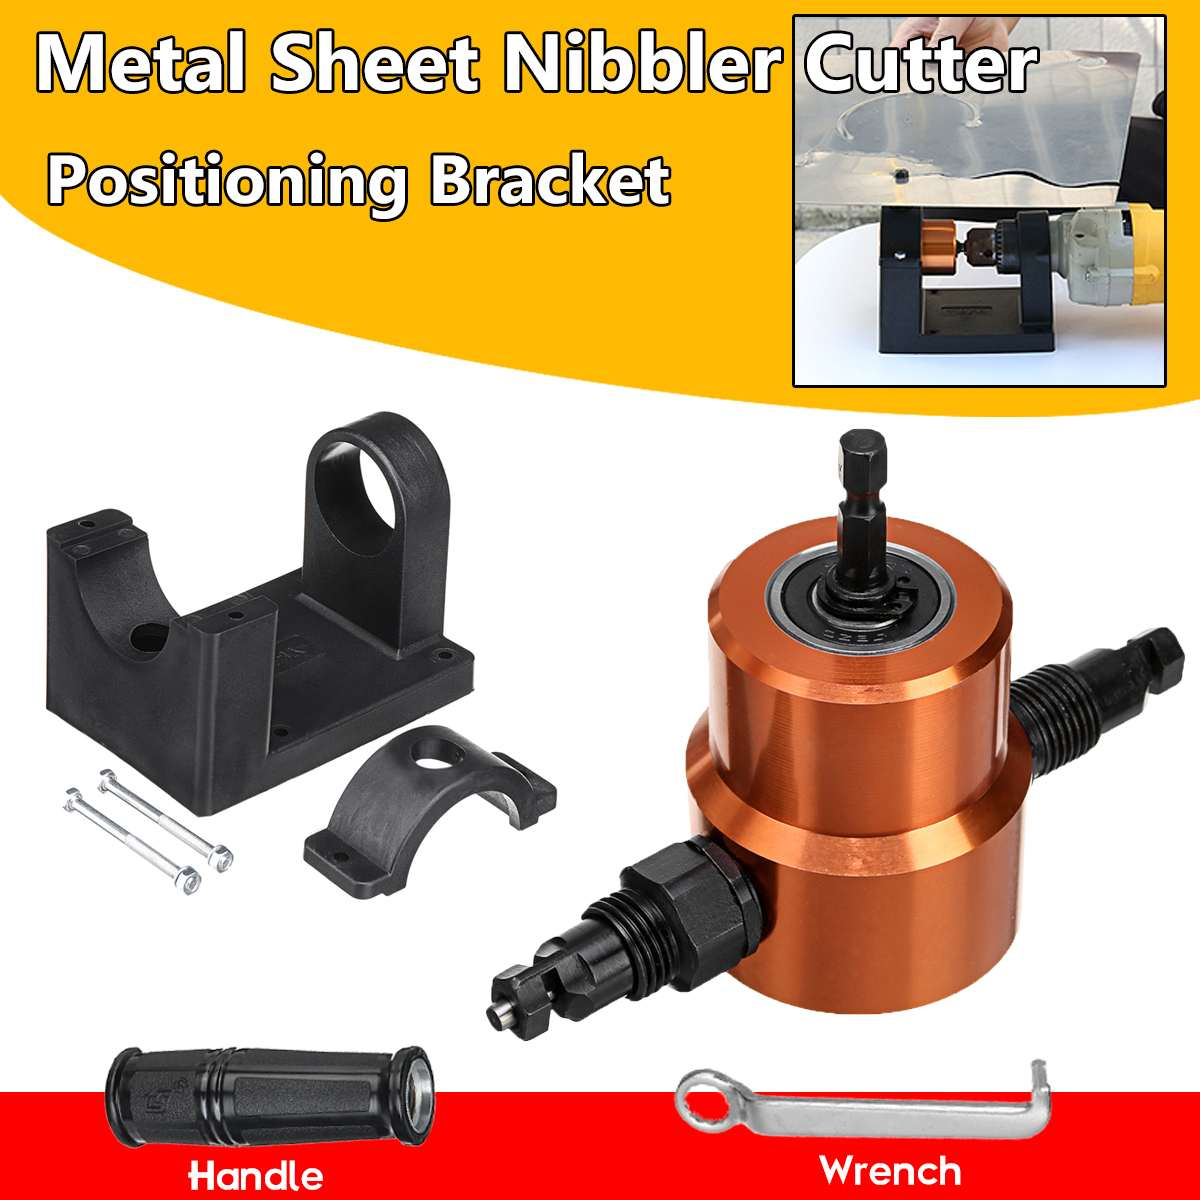 Sheet Metal Nibbler Double Headed Metal Cutter Saw Drill Attachment 360 Degree Adjustable Cutting Tool With Positioning Bracket